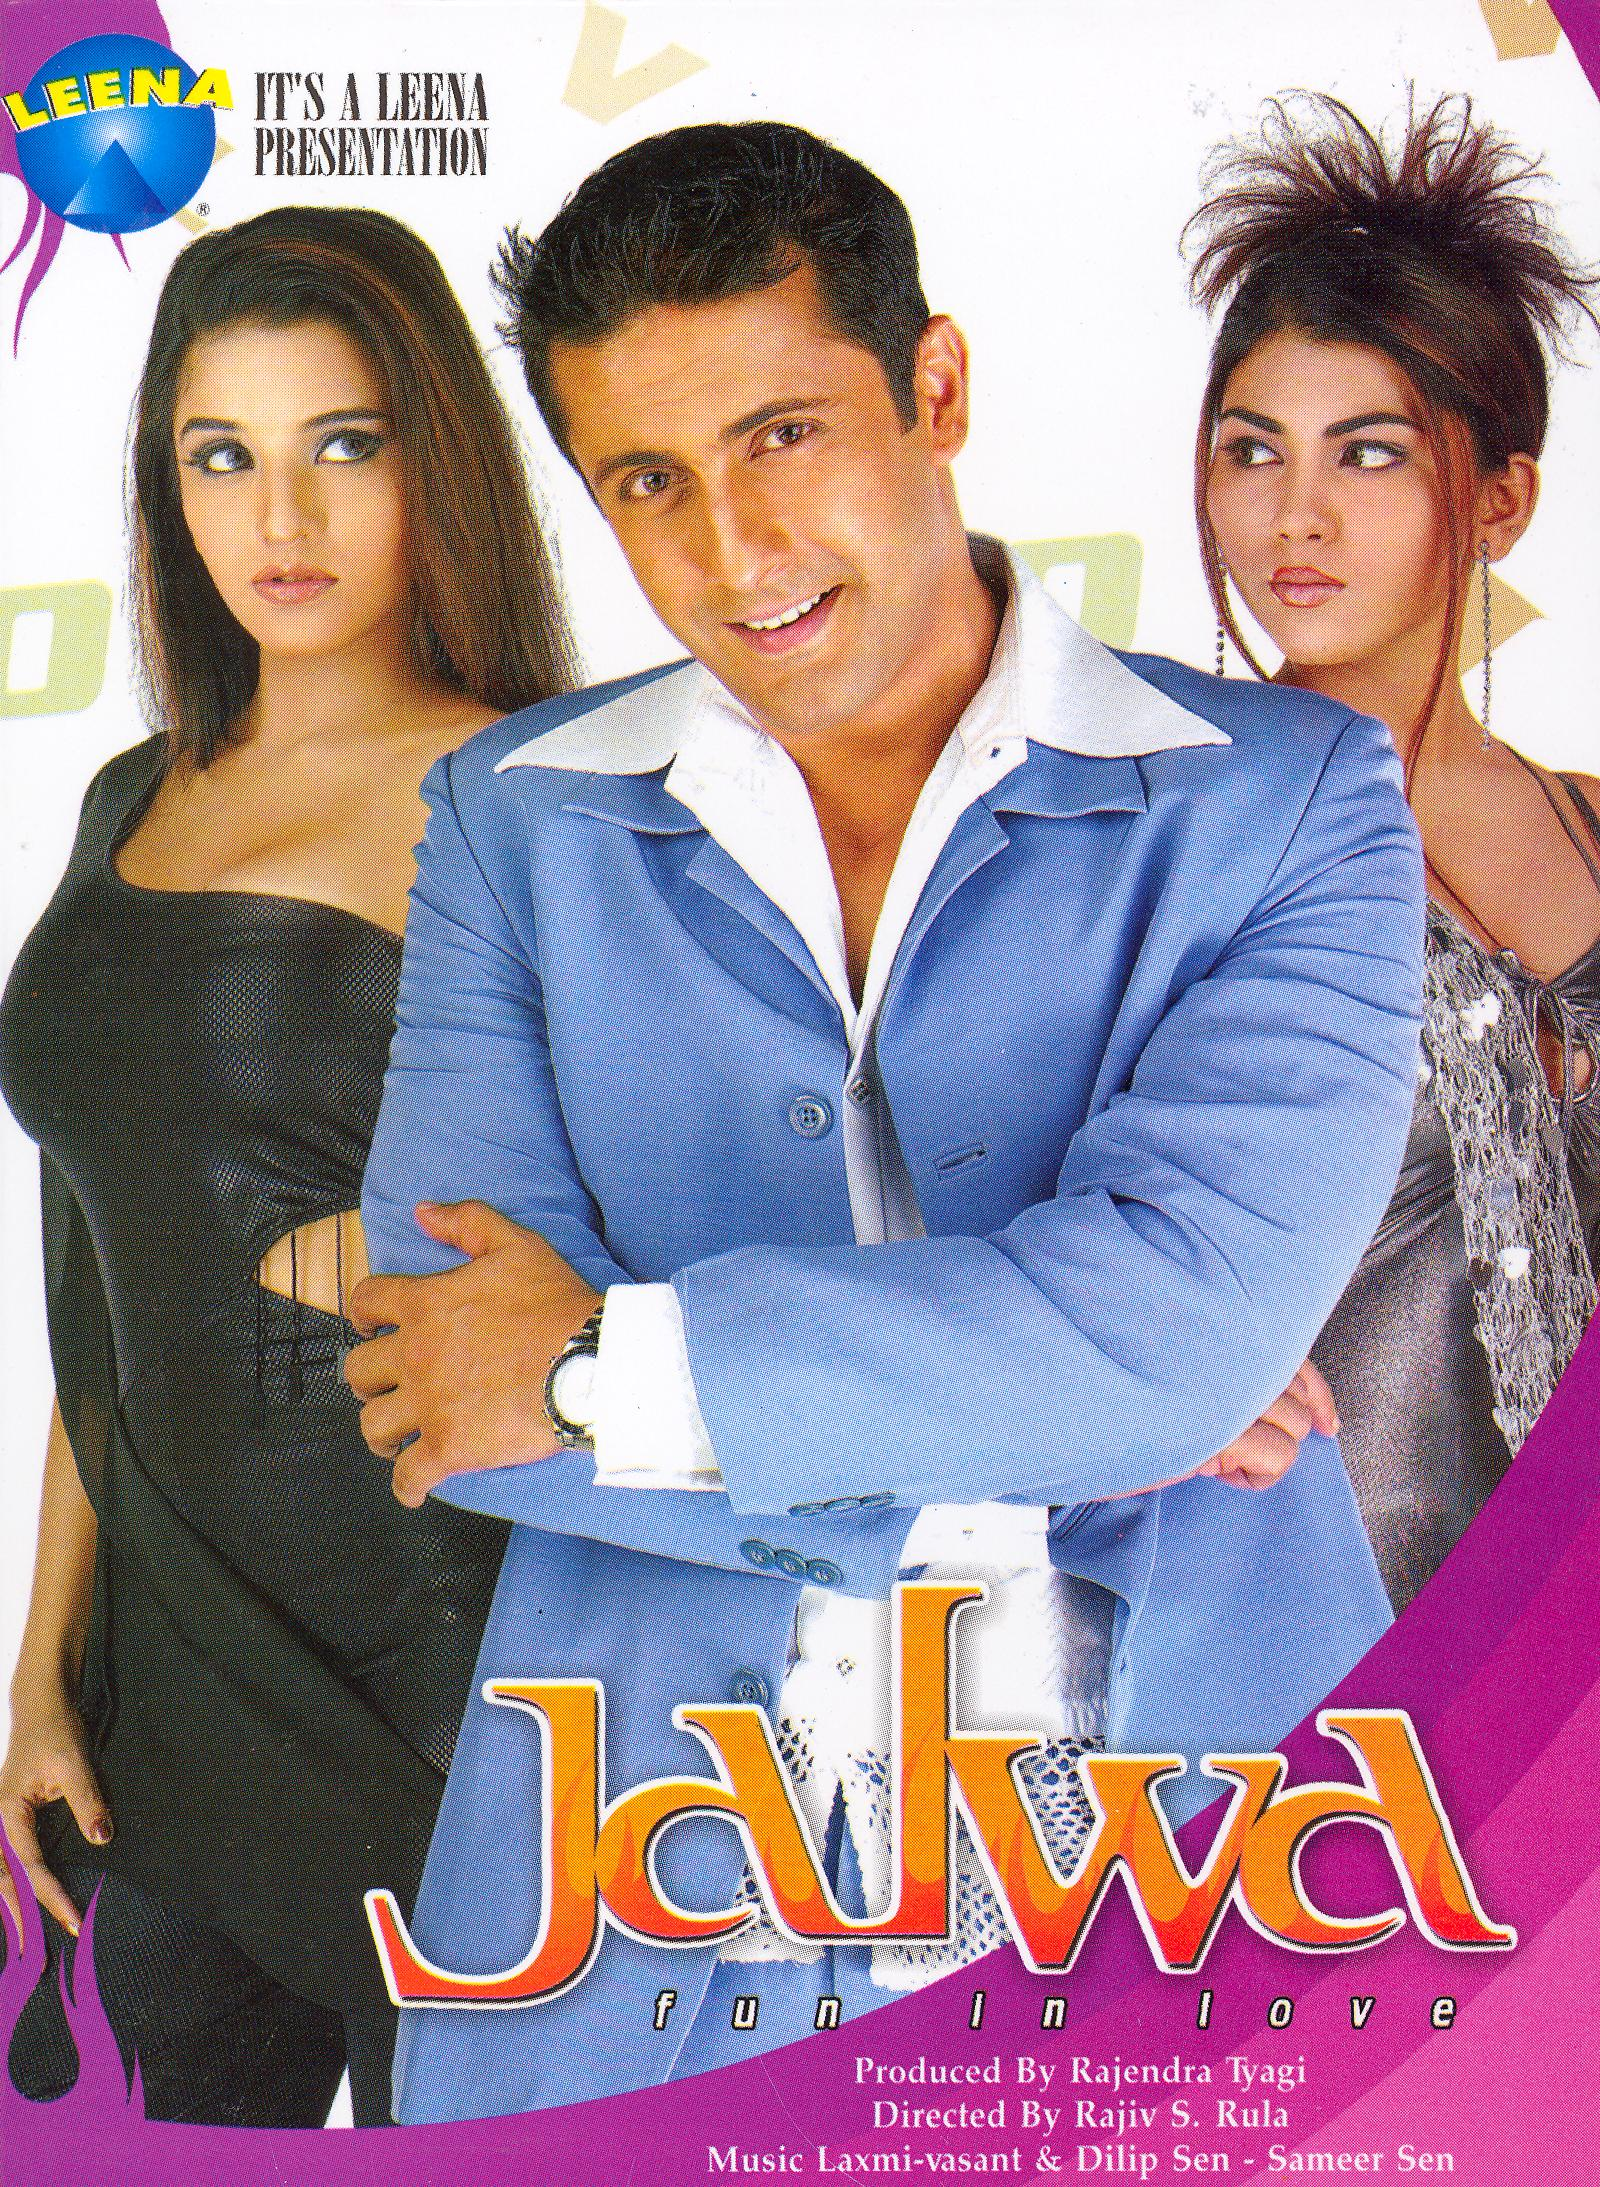 Jalwa - Fun in Love